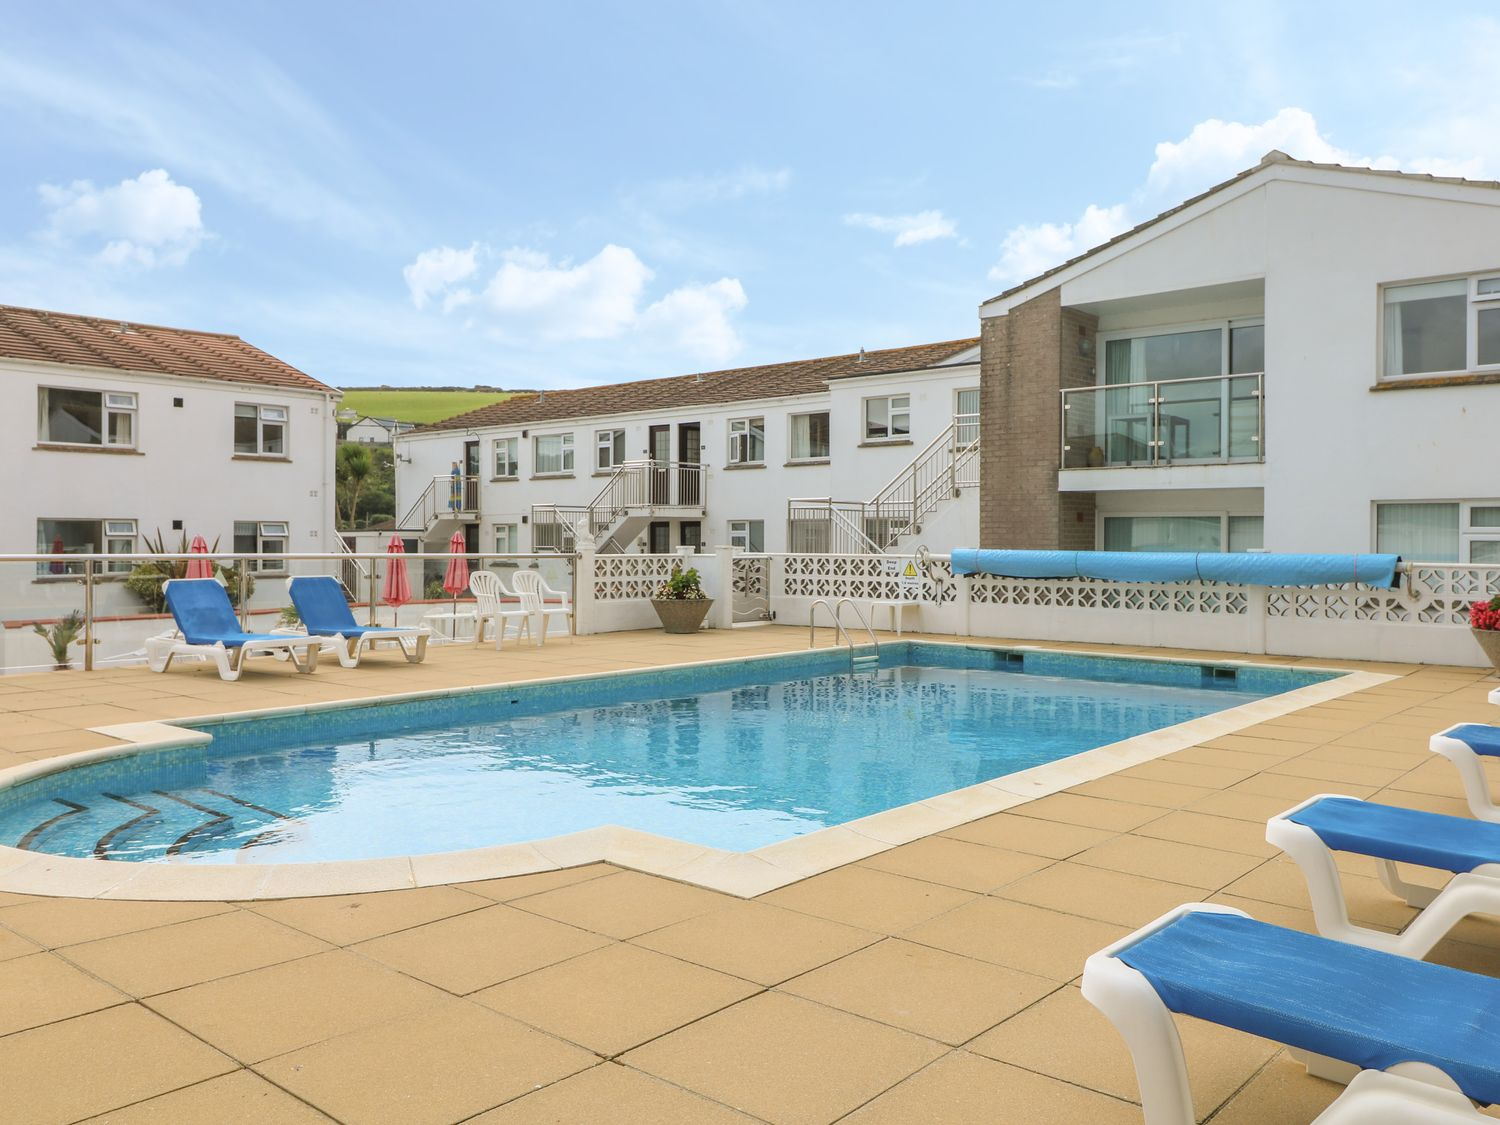 2 Europa Court in Mawgan Porth - sleeps 4 people